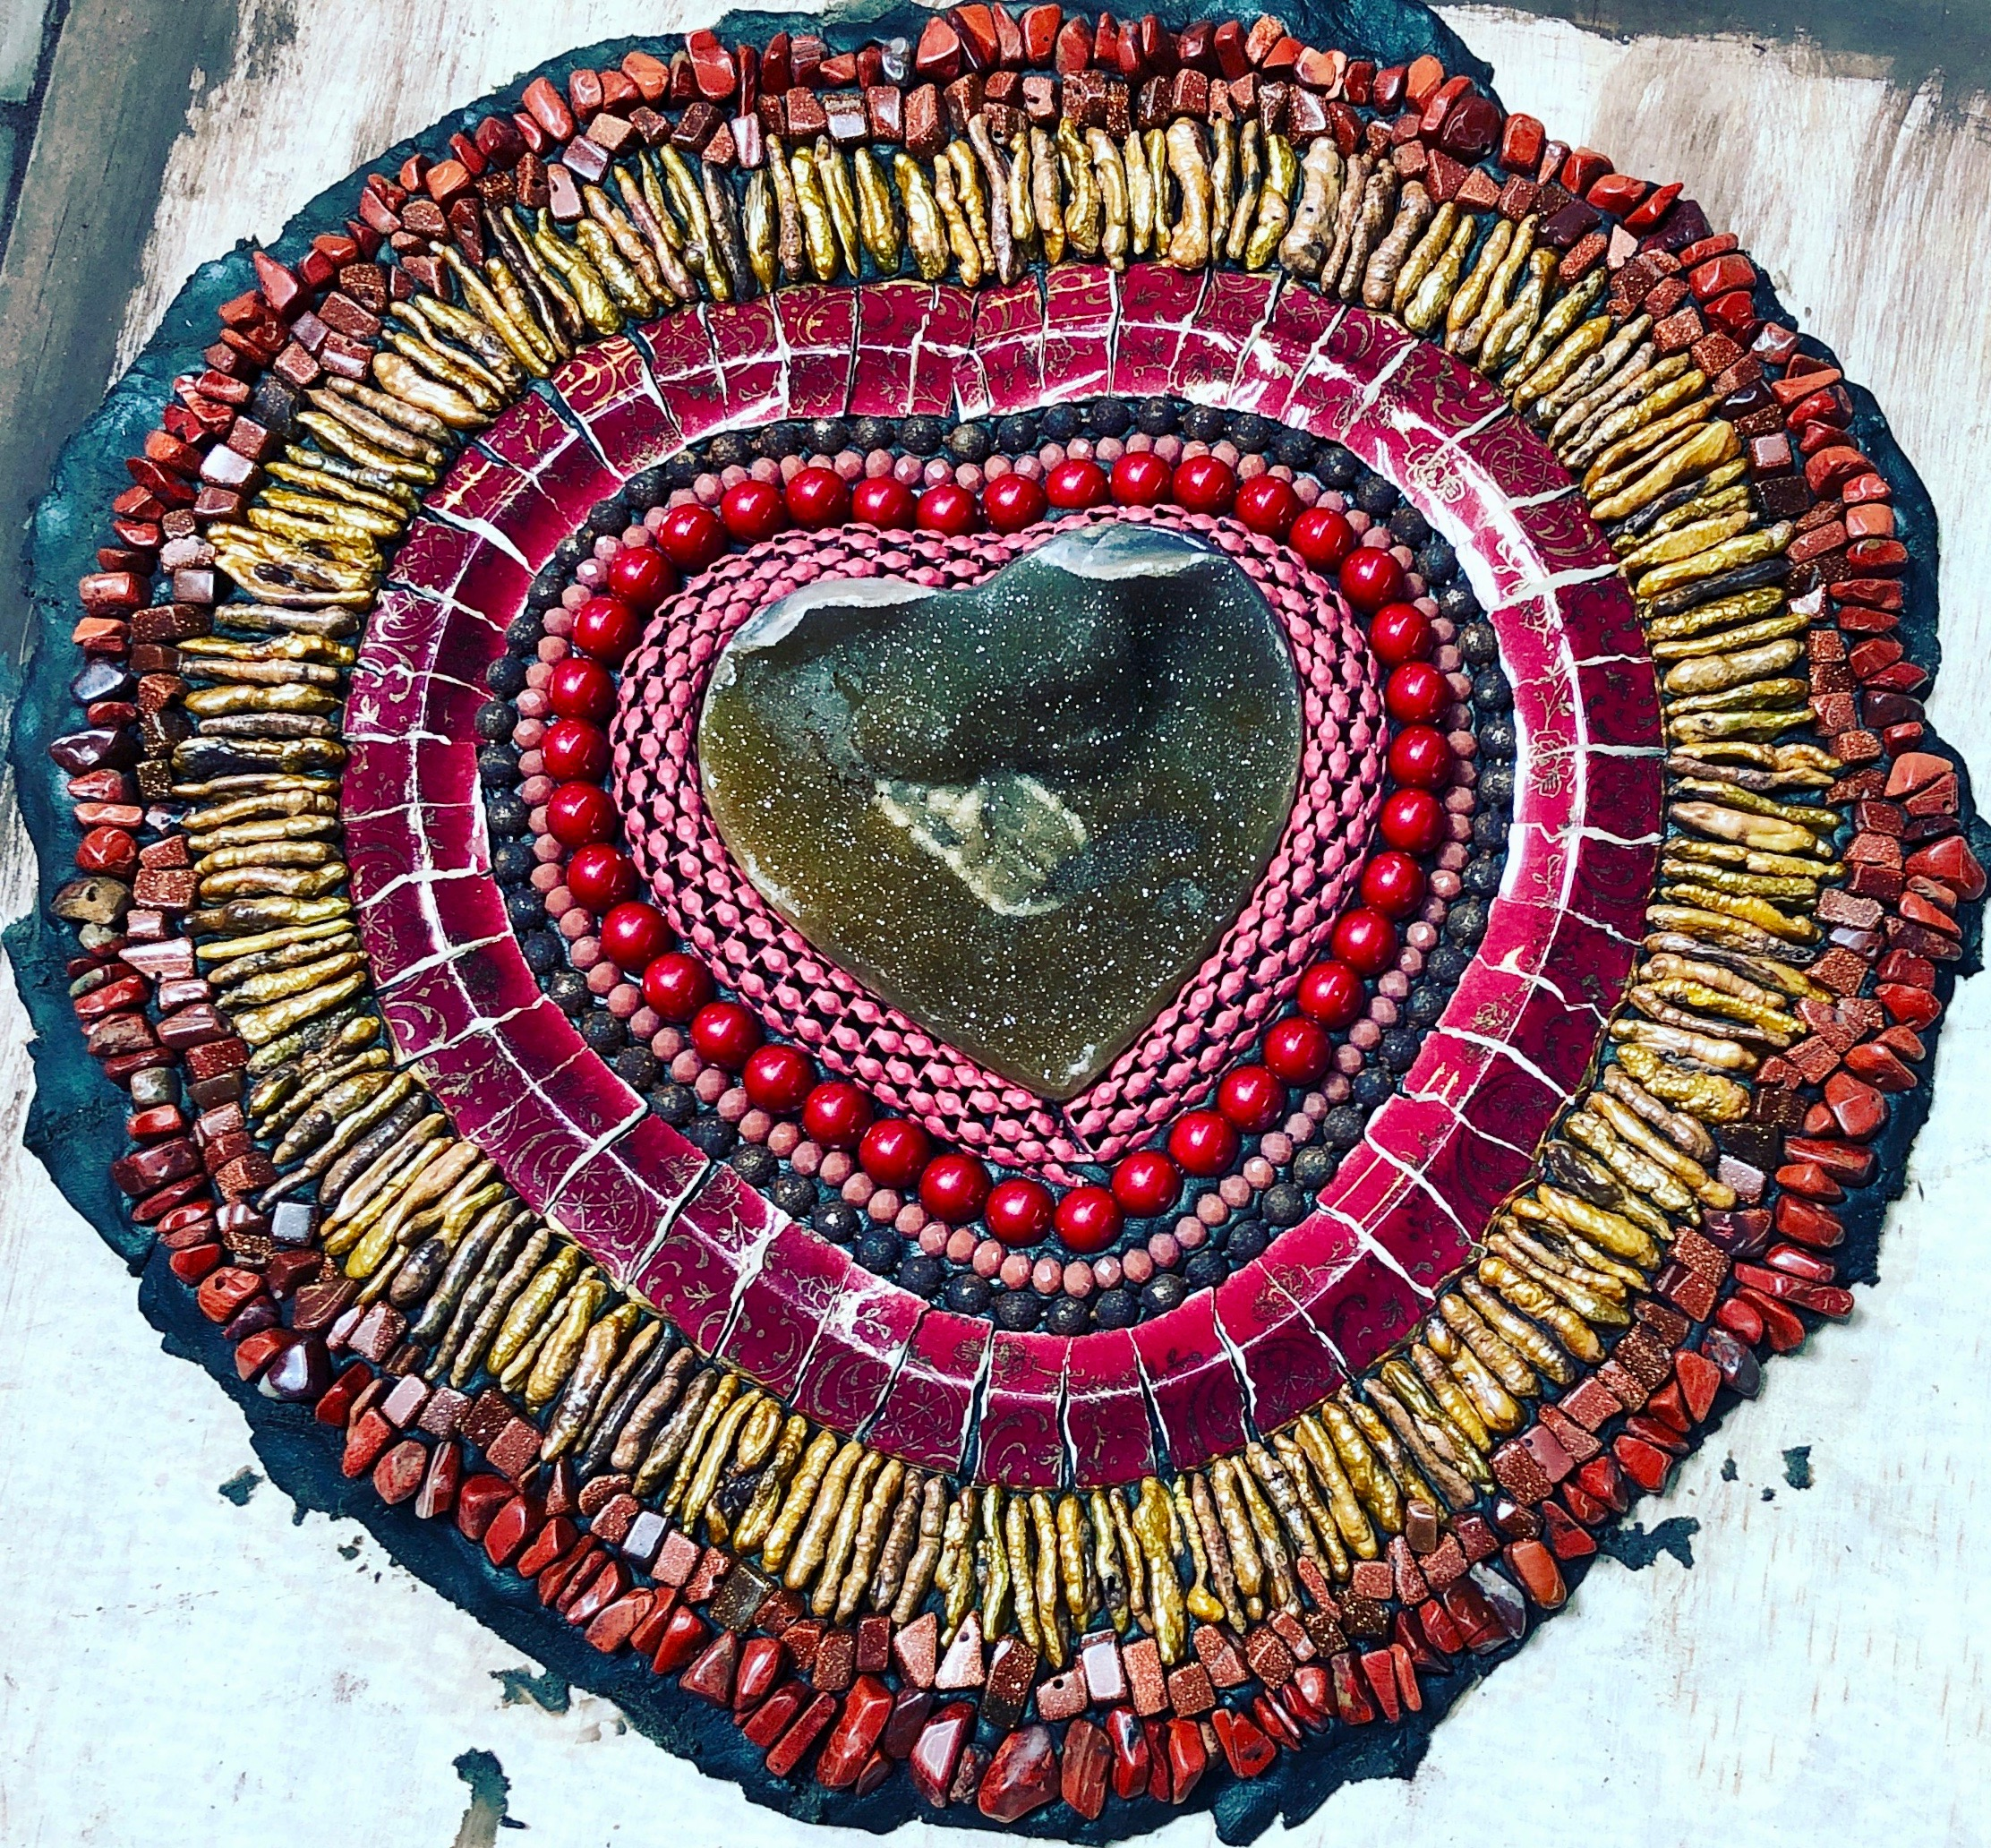 Using a rich red & golden palette, this piece begins to grow out from the center heart. I am combing interesting textures and colors together to create a warmth. As in life, the heart can blossom when nurtured with love.